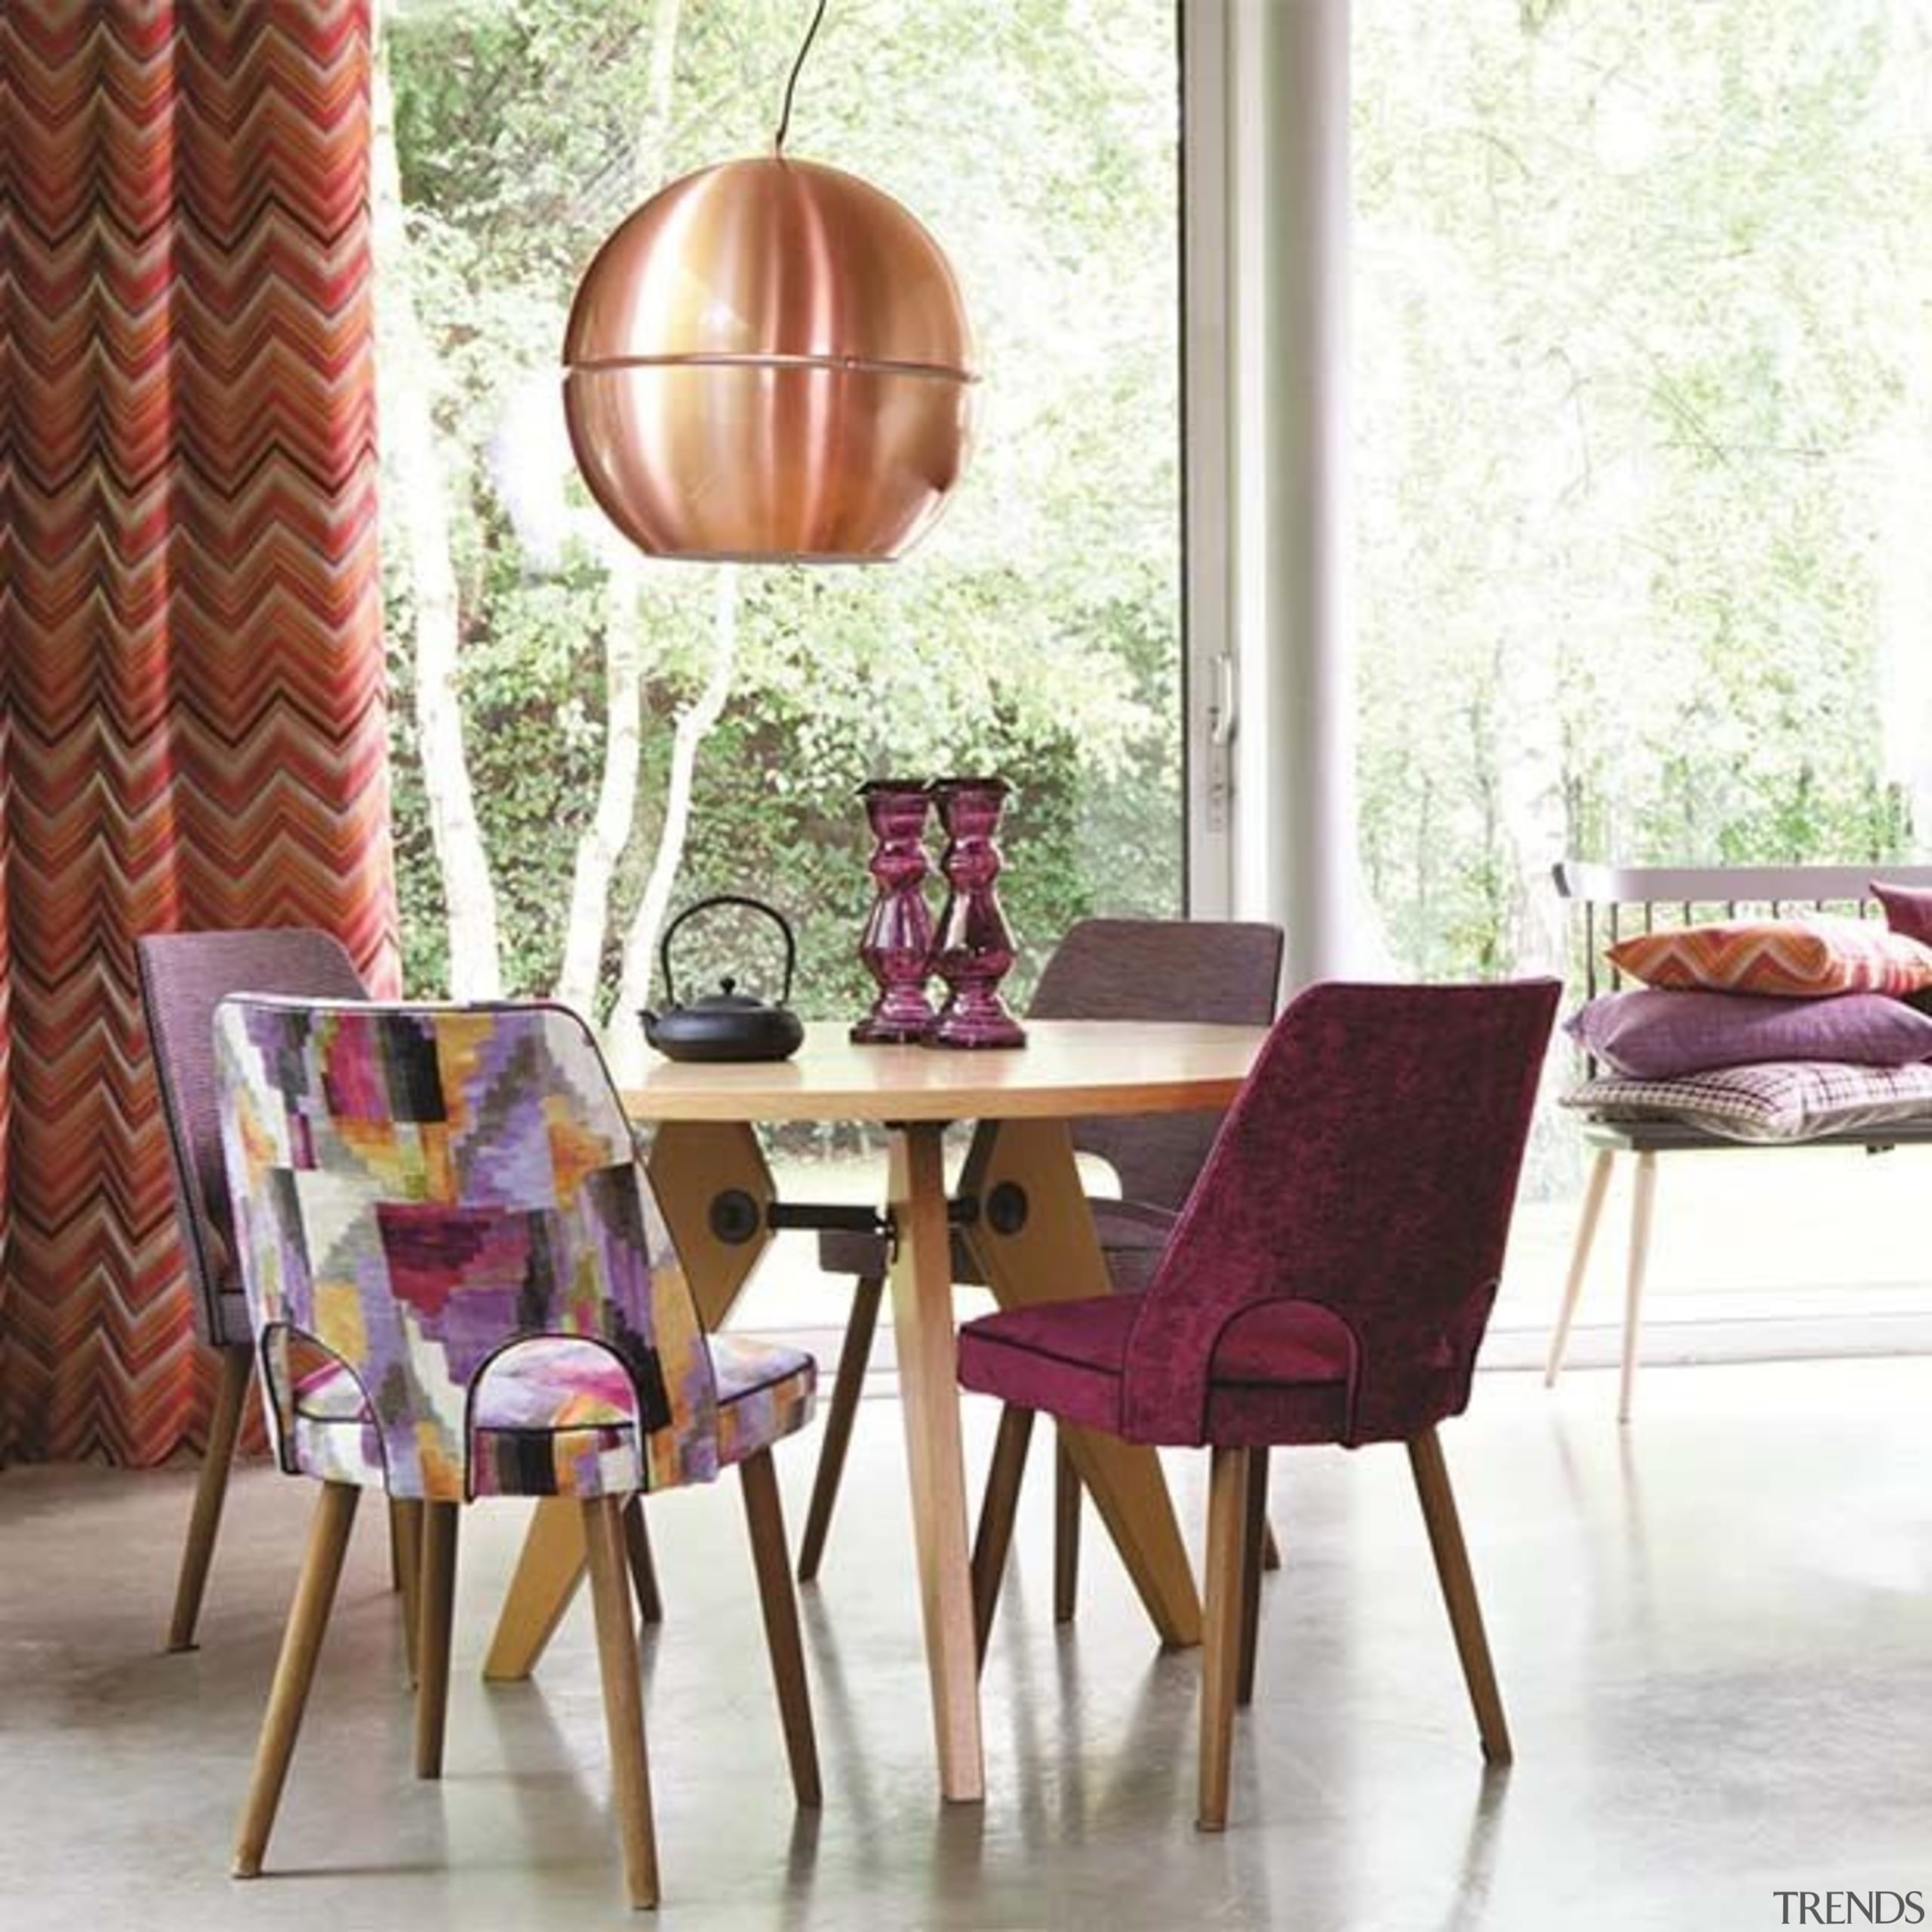 Kaleidoscope 2 chair, dining room, furniture, home, interior design, living room, room, table, white